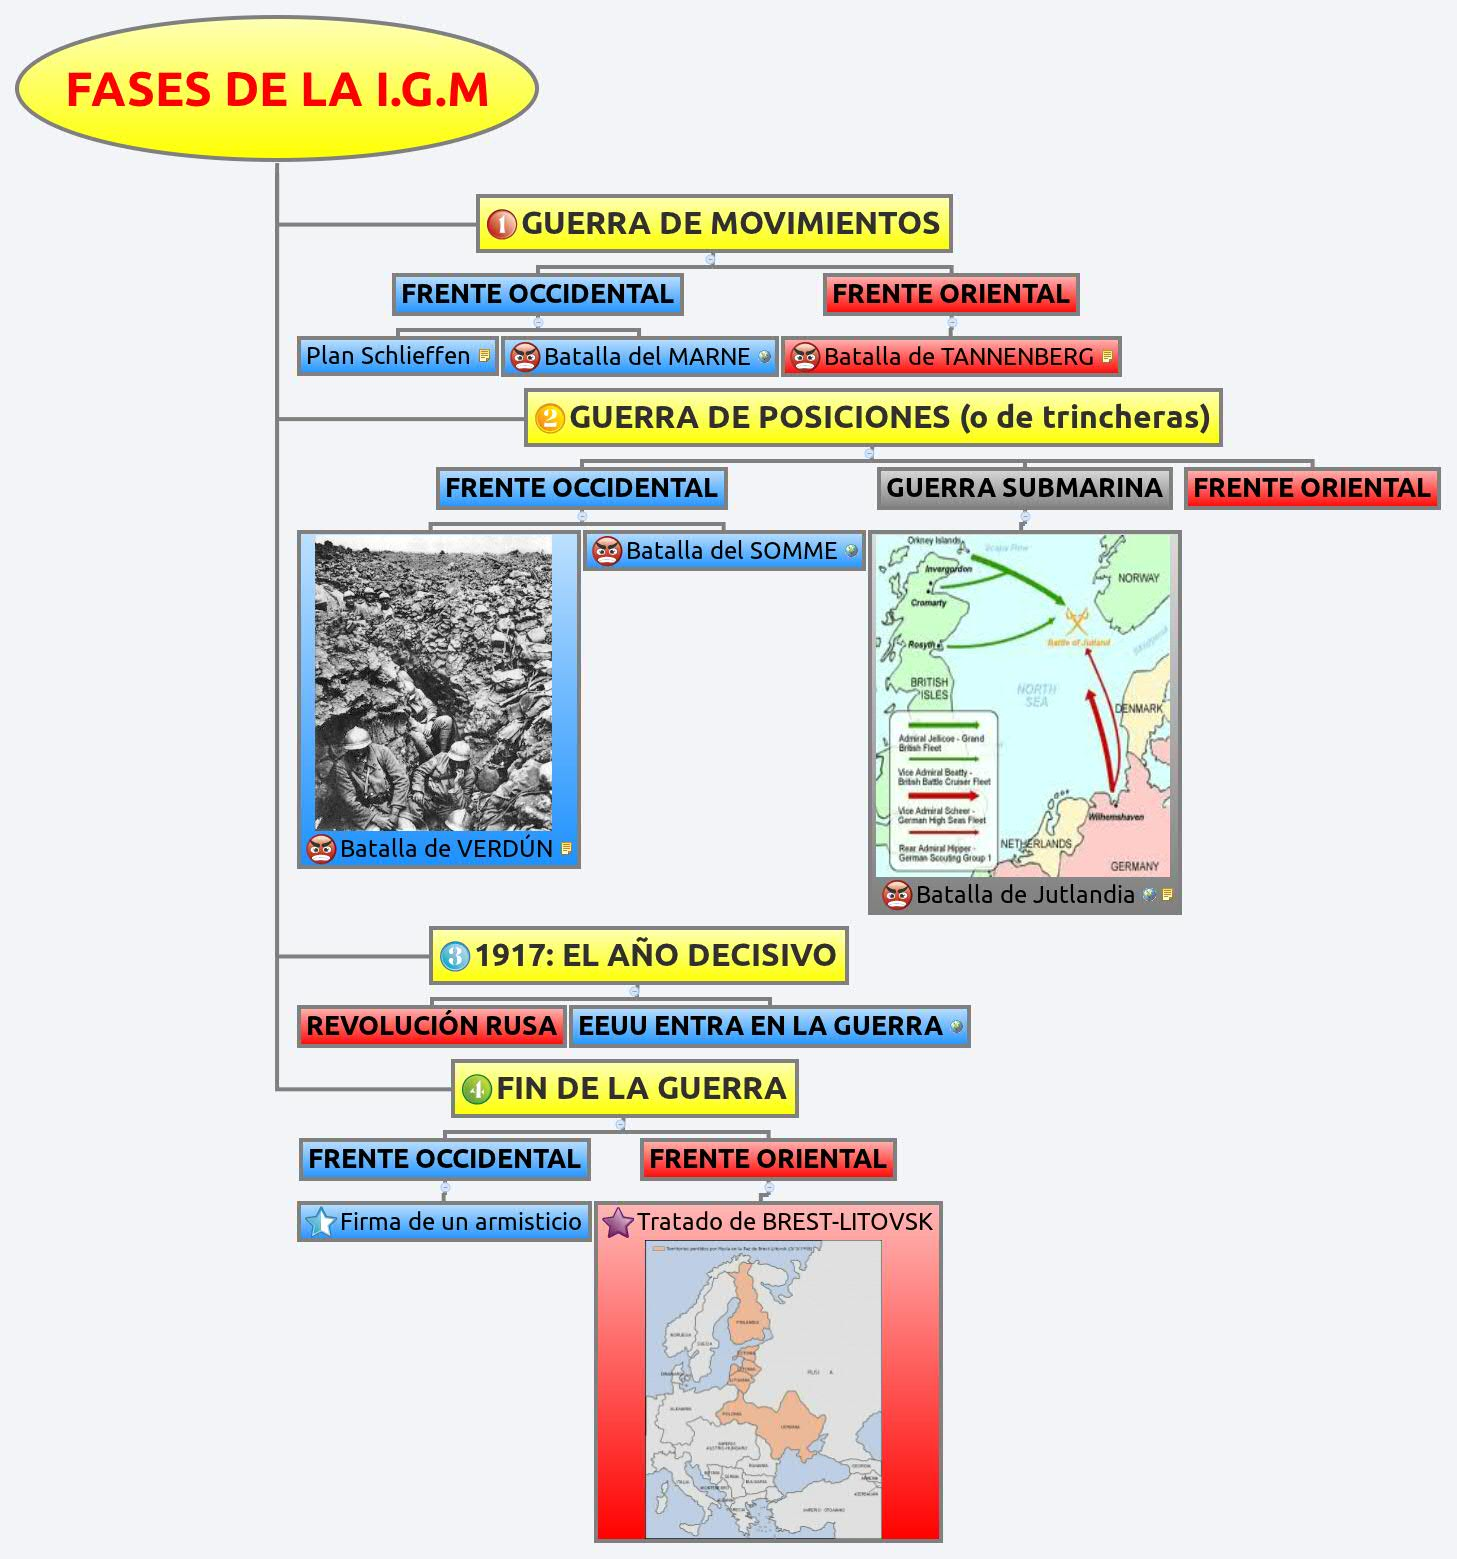 Fases de la i g m krsti xmind the most professional mind map software